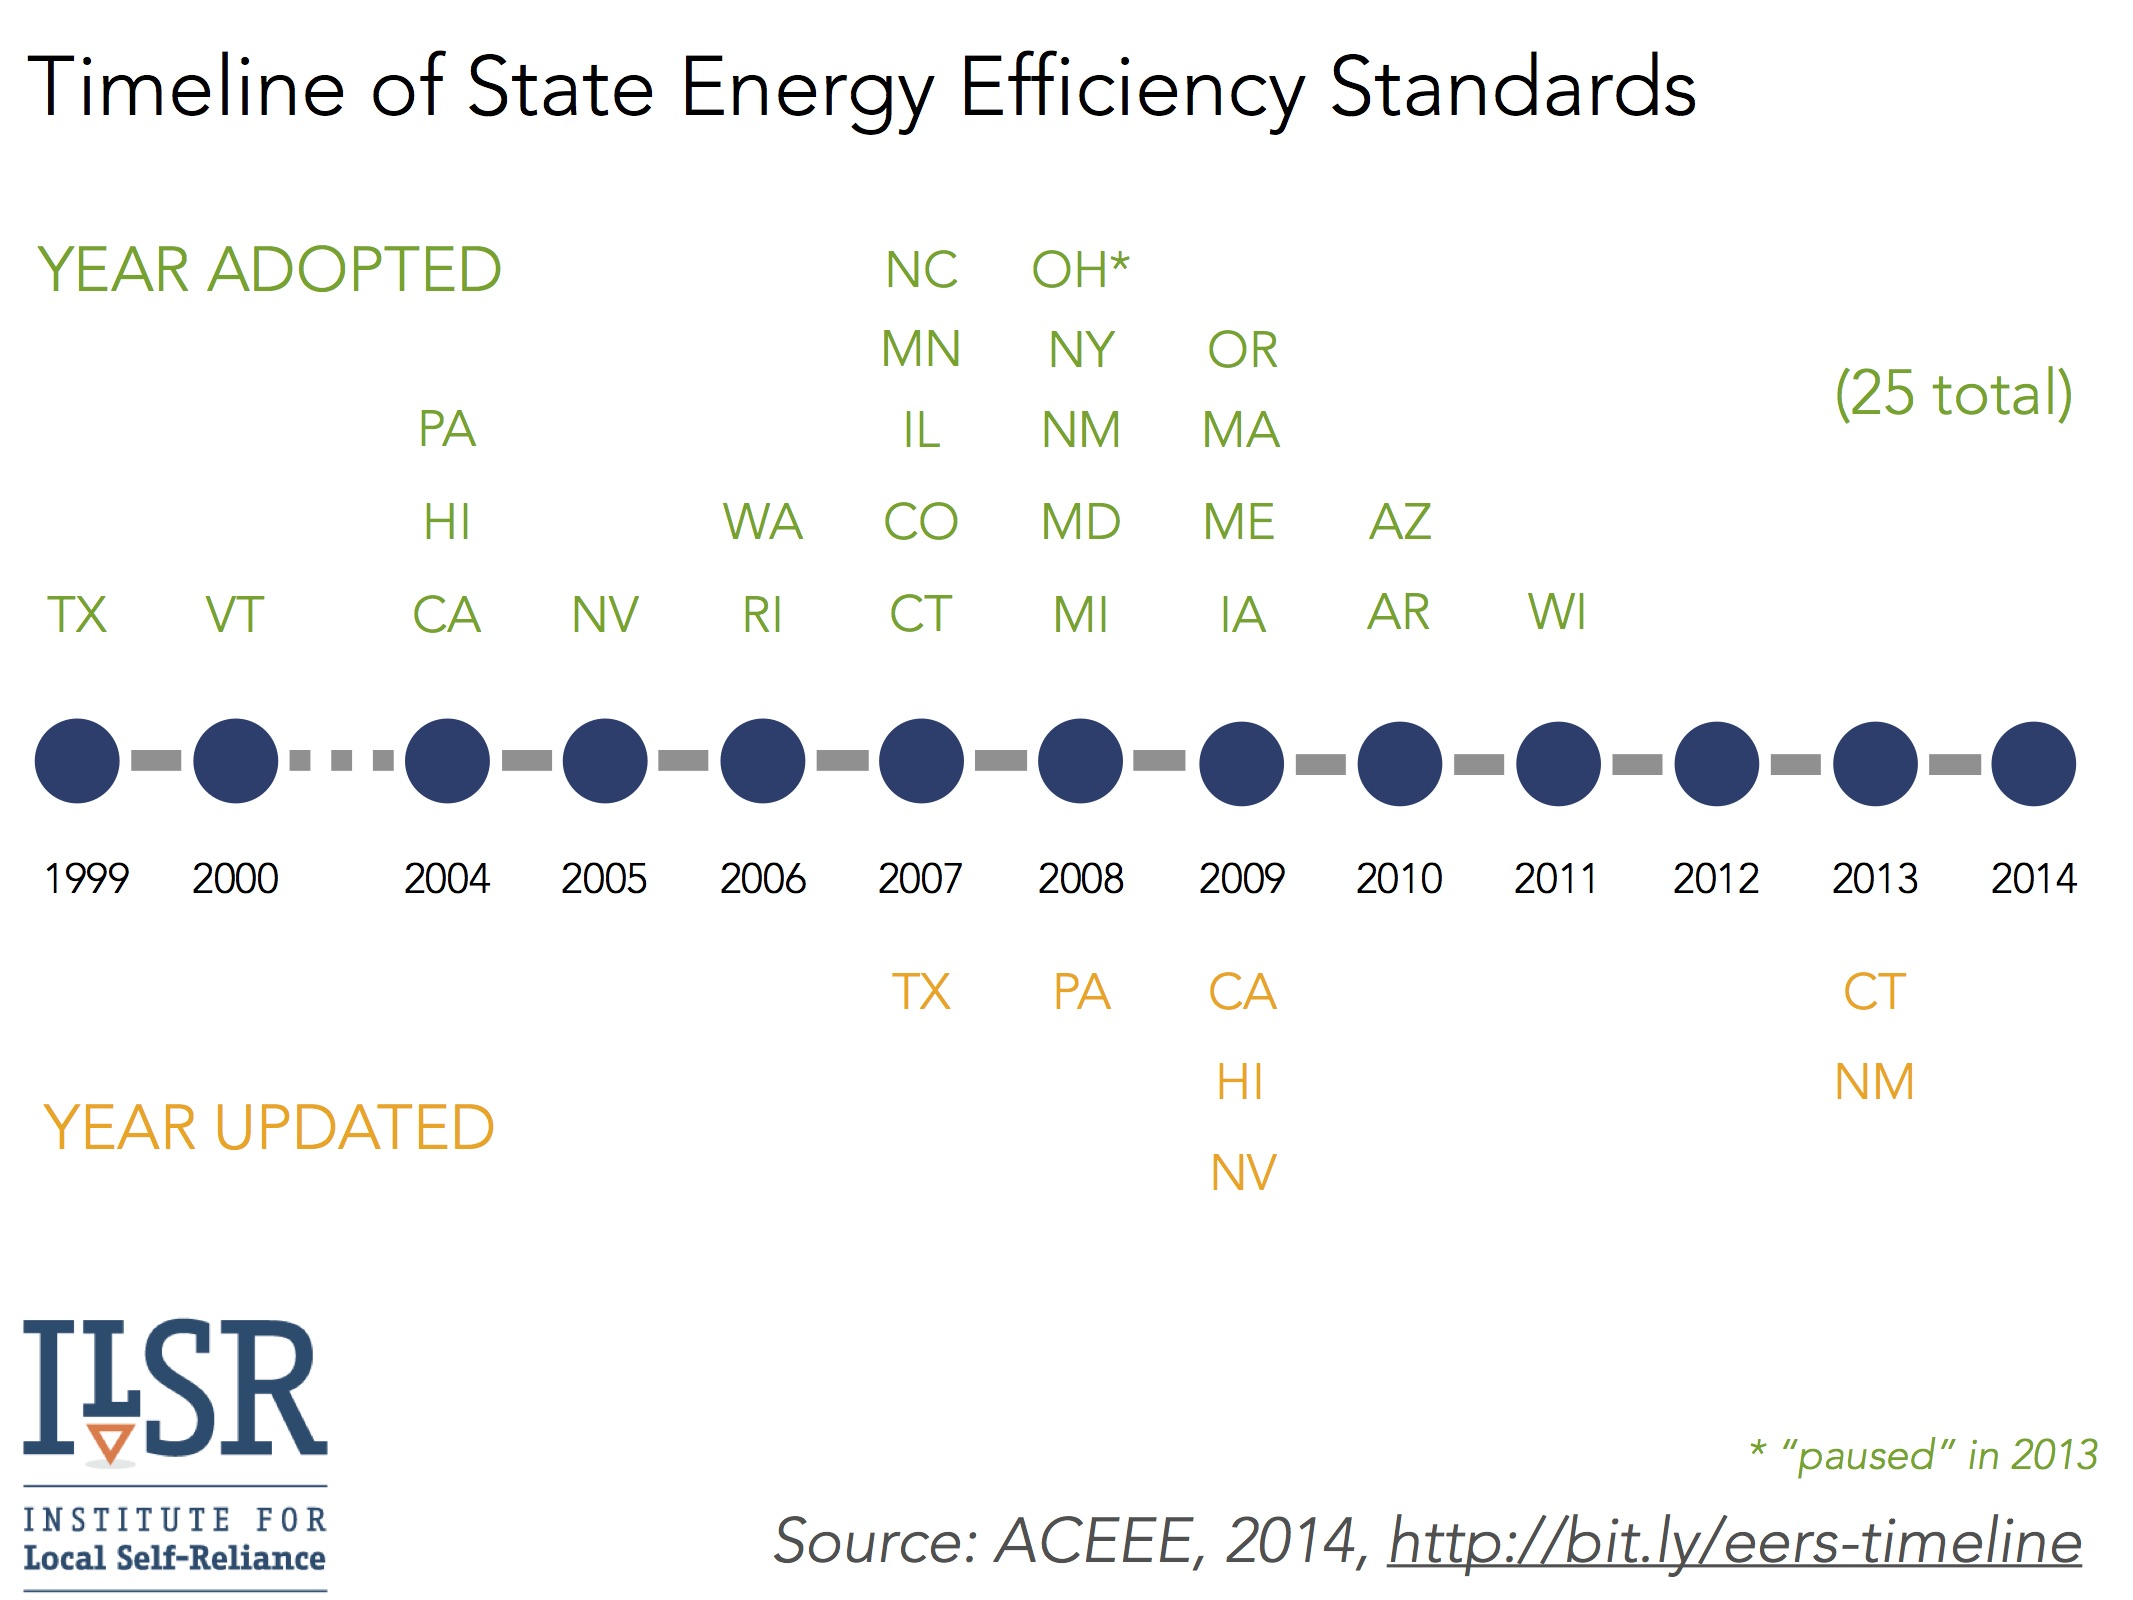 timeline of state energy efficiency standards - ilsr 2014 v2